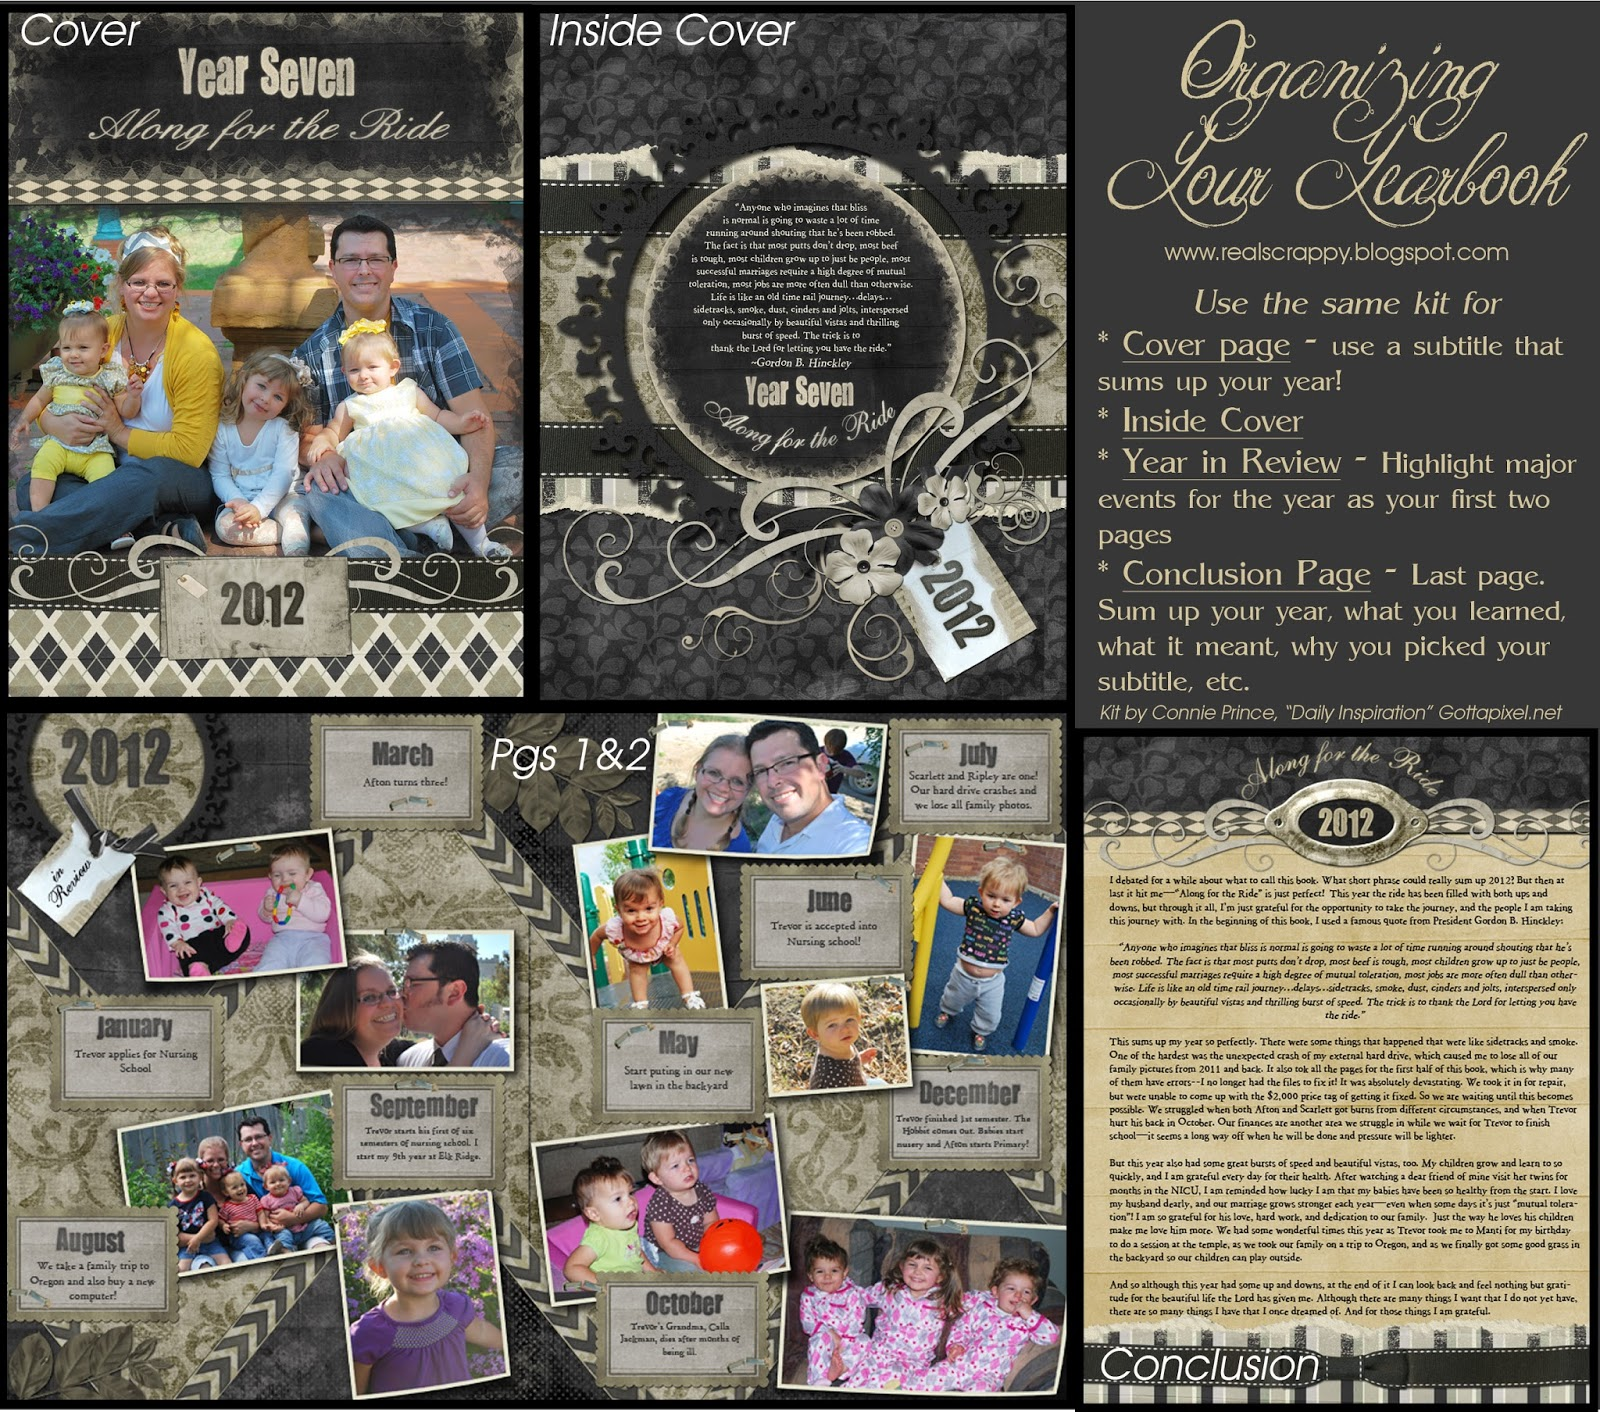 Real Scrappy Digital Scrapbooking From Start To Finish Organizing